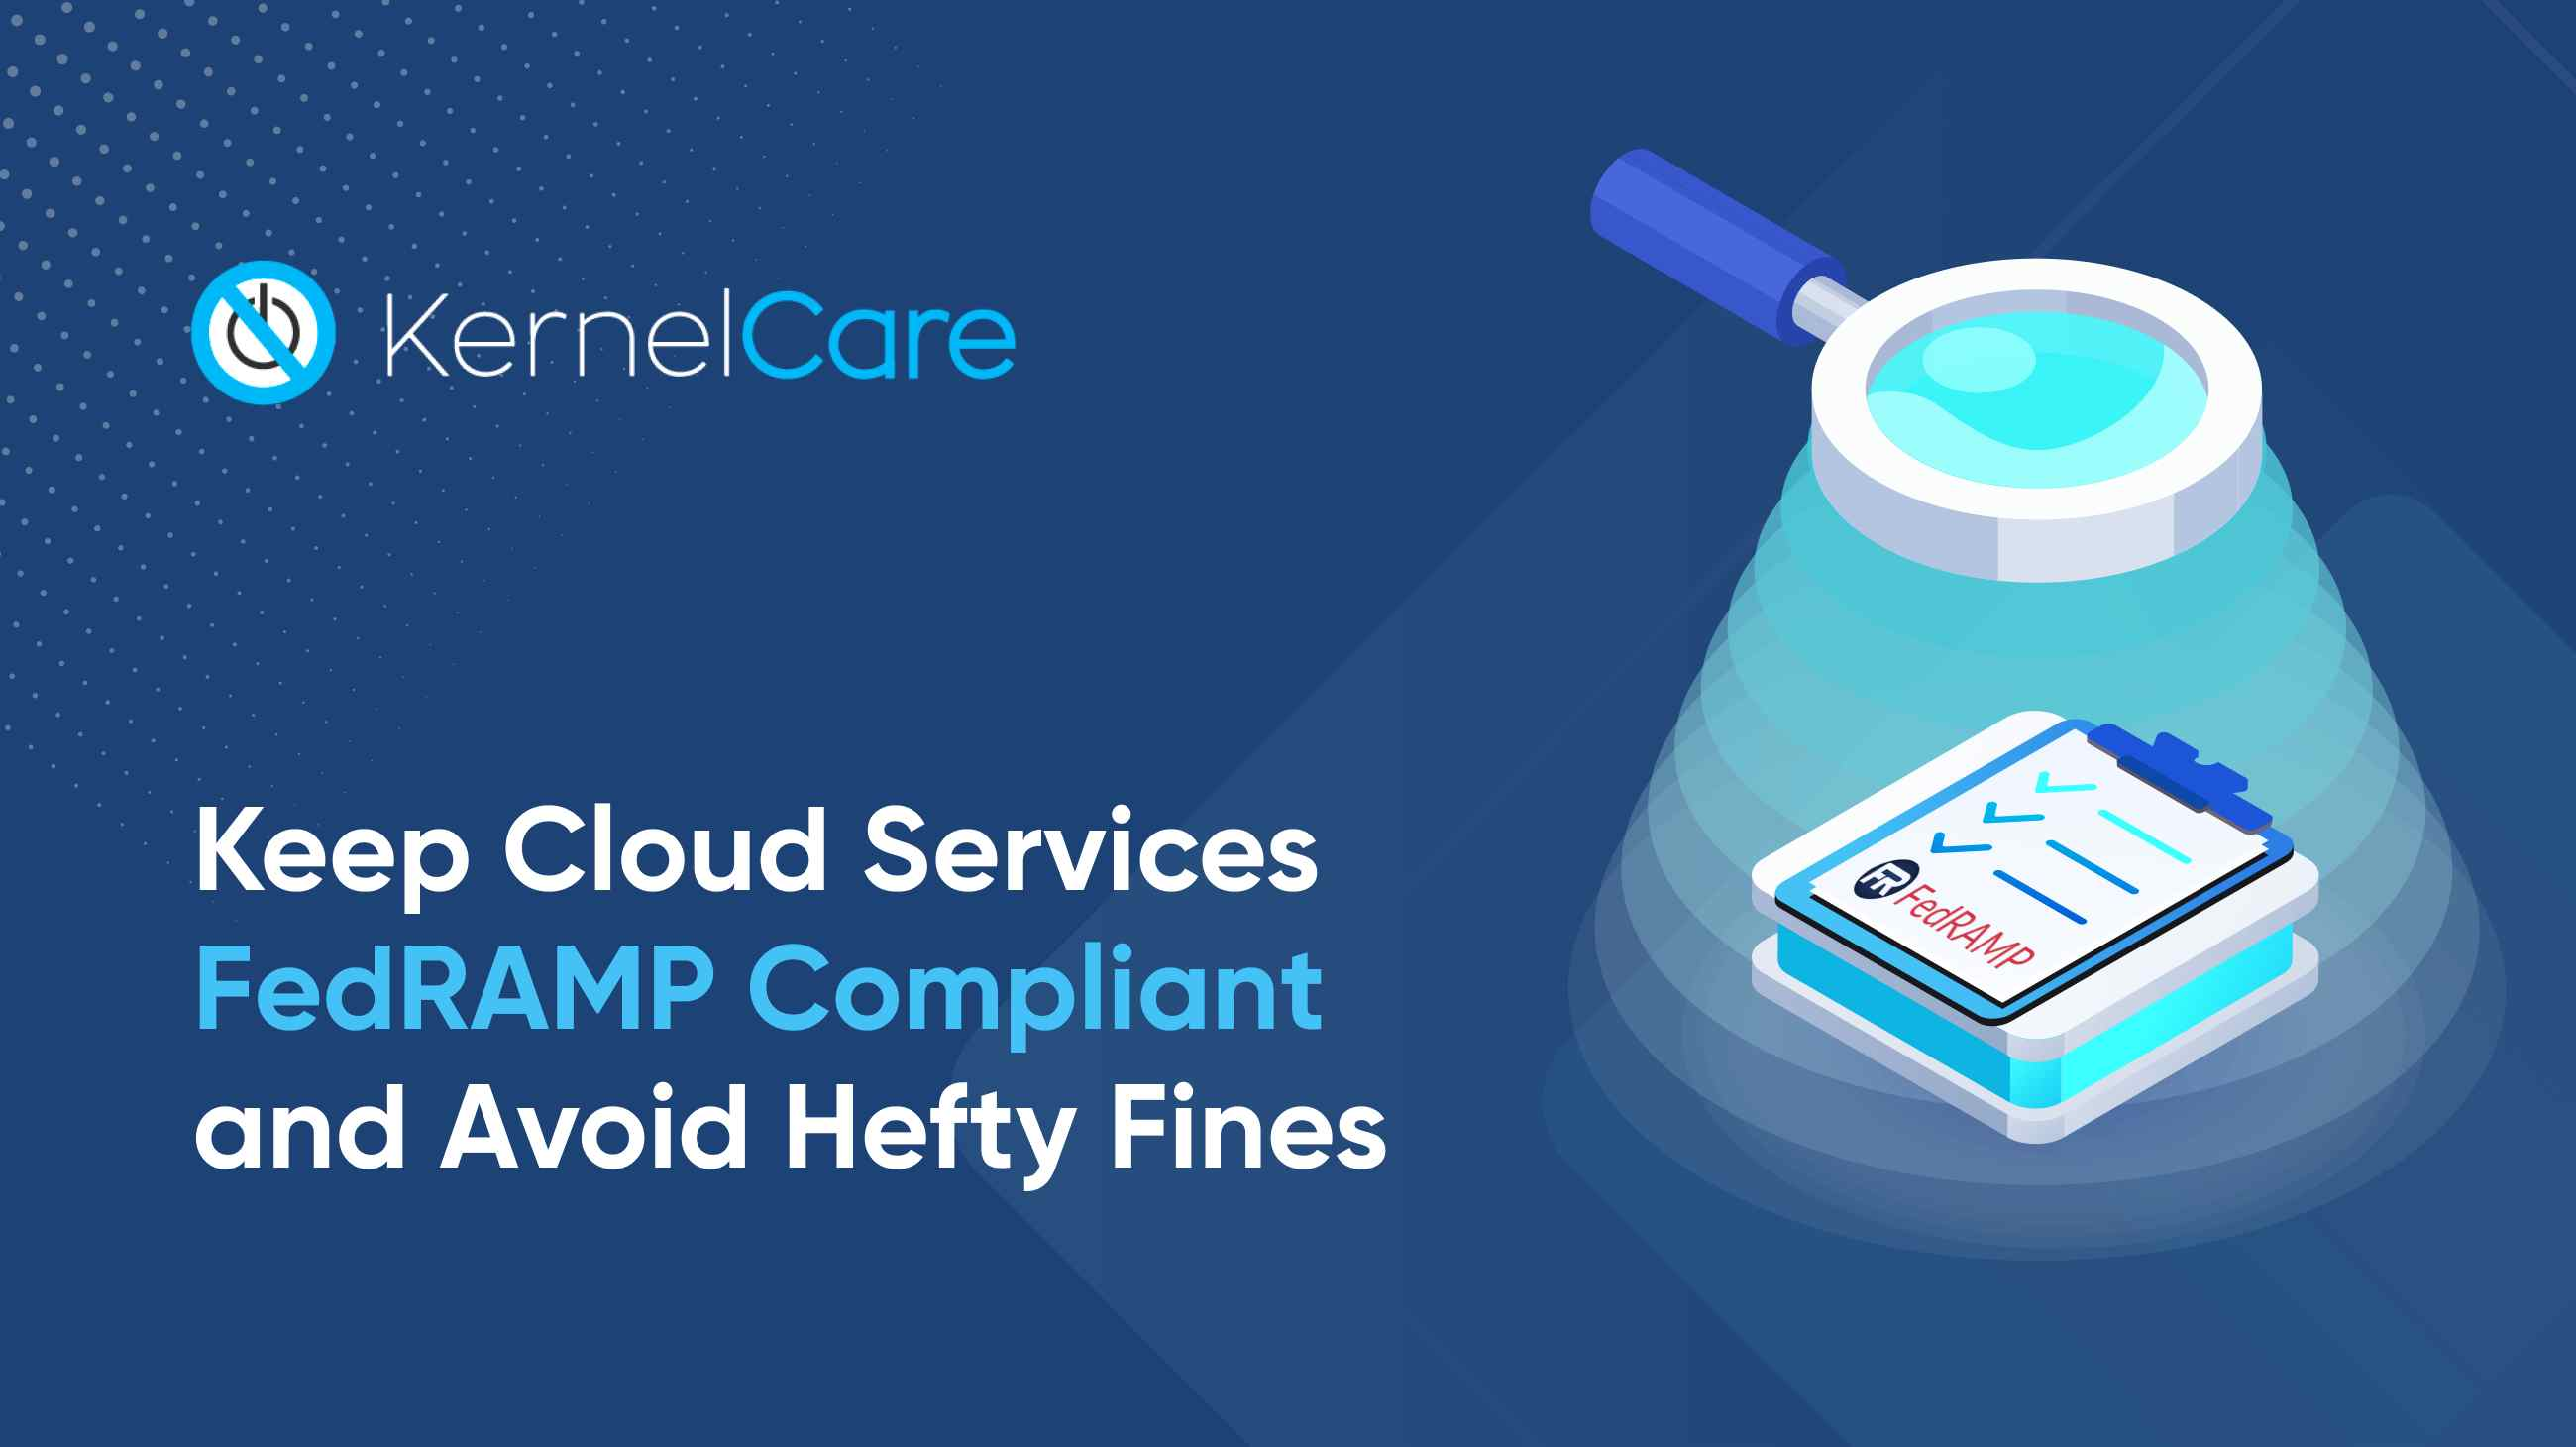 Keep Cloud Services FedRAMP Compliant and Avoid Hefty Fines